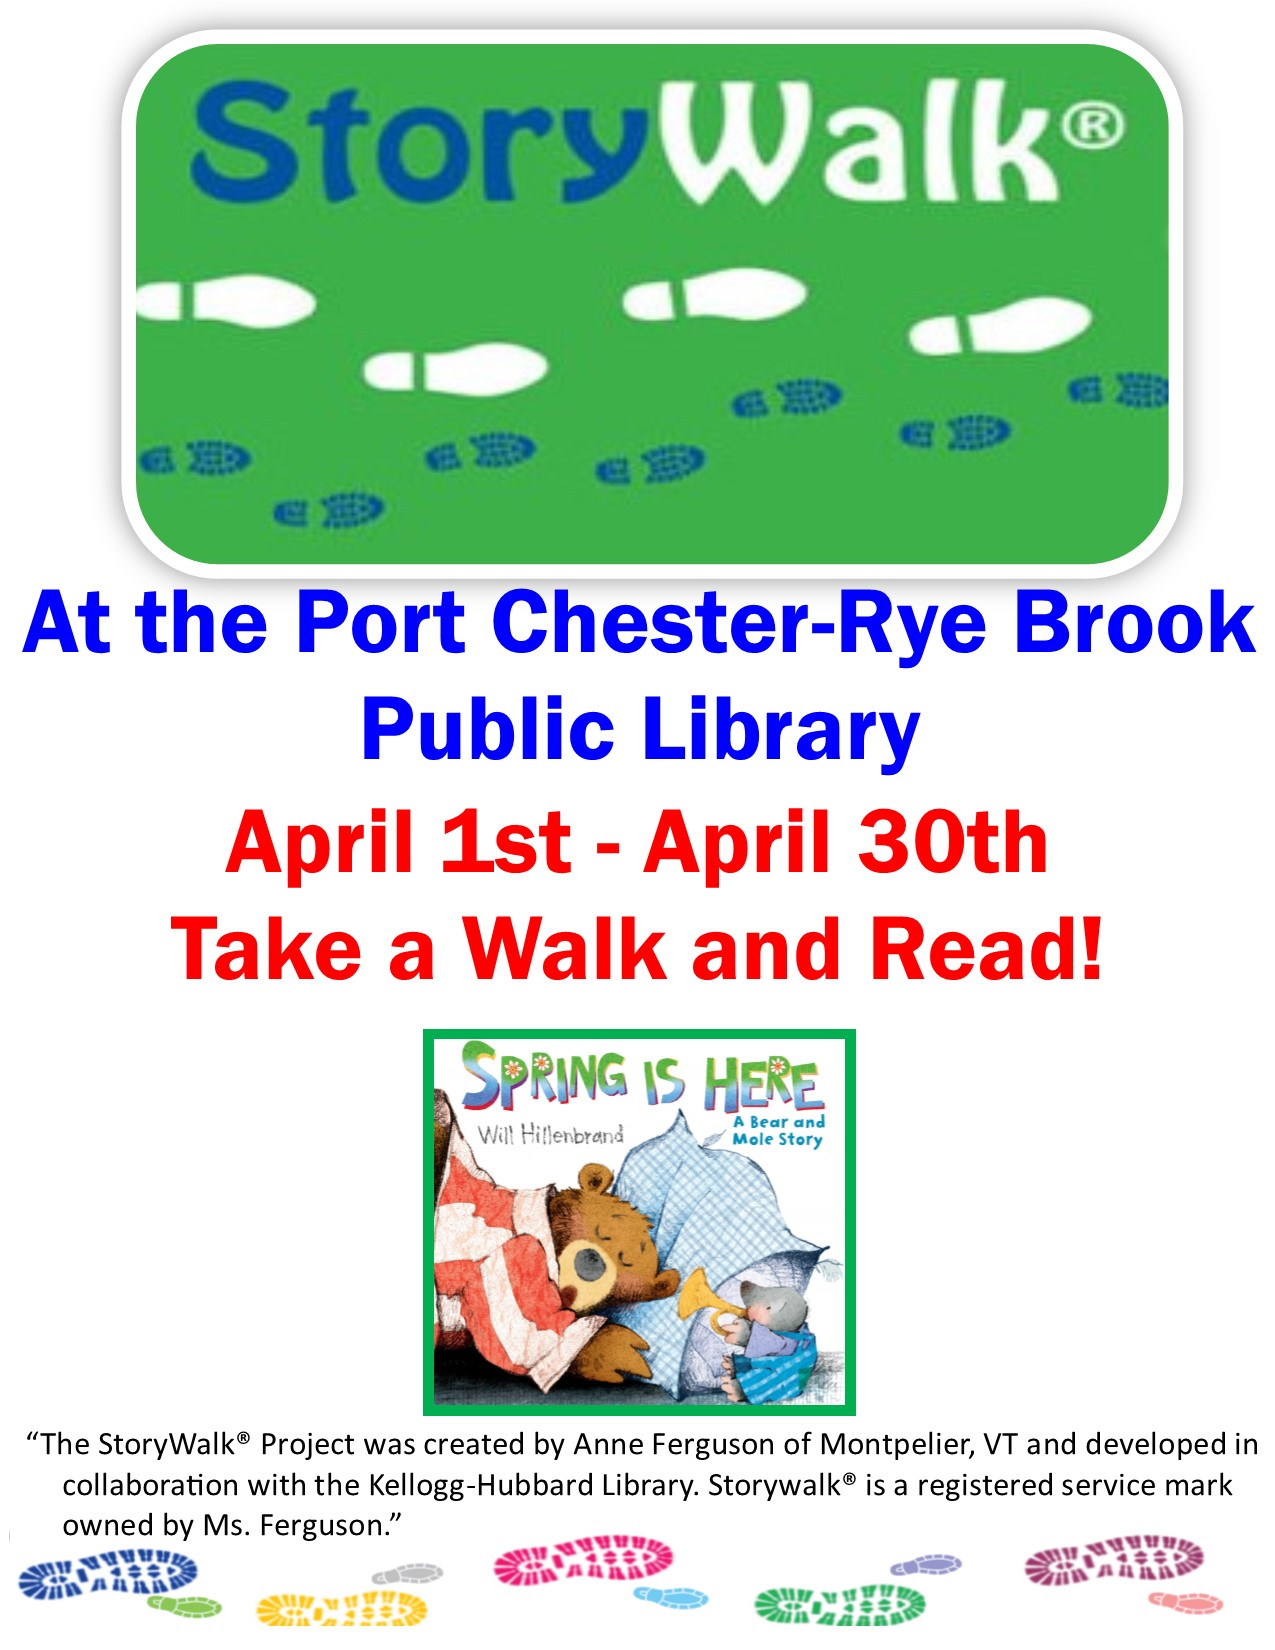 IN PERSON StoryWalk at the Port Chester-Rye Brook Public Library at Port Chester-Rye Brook Library